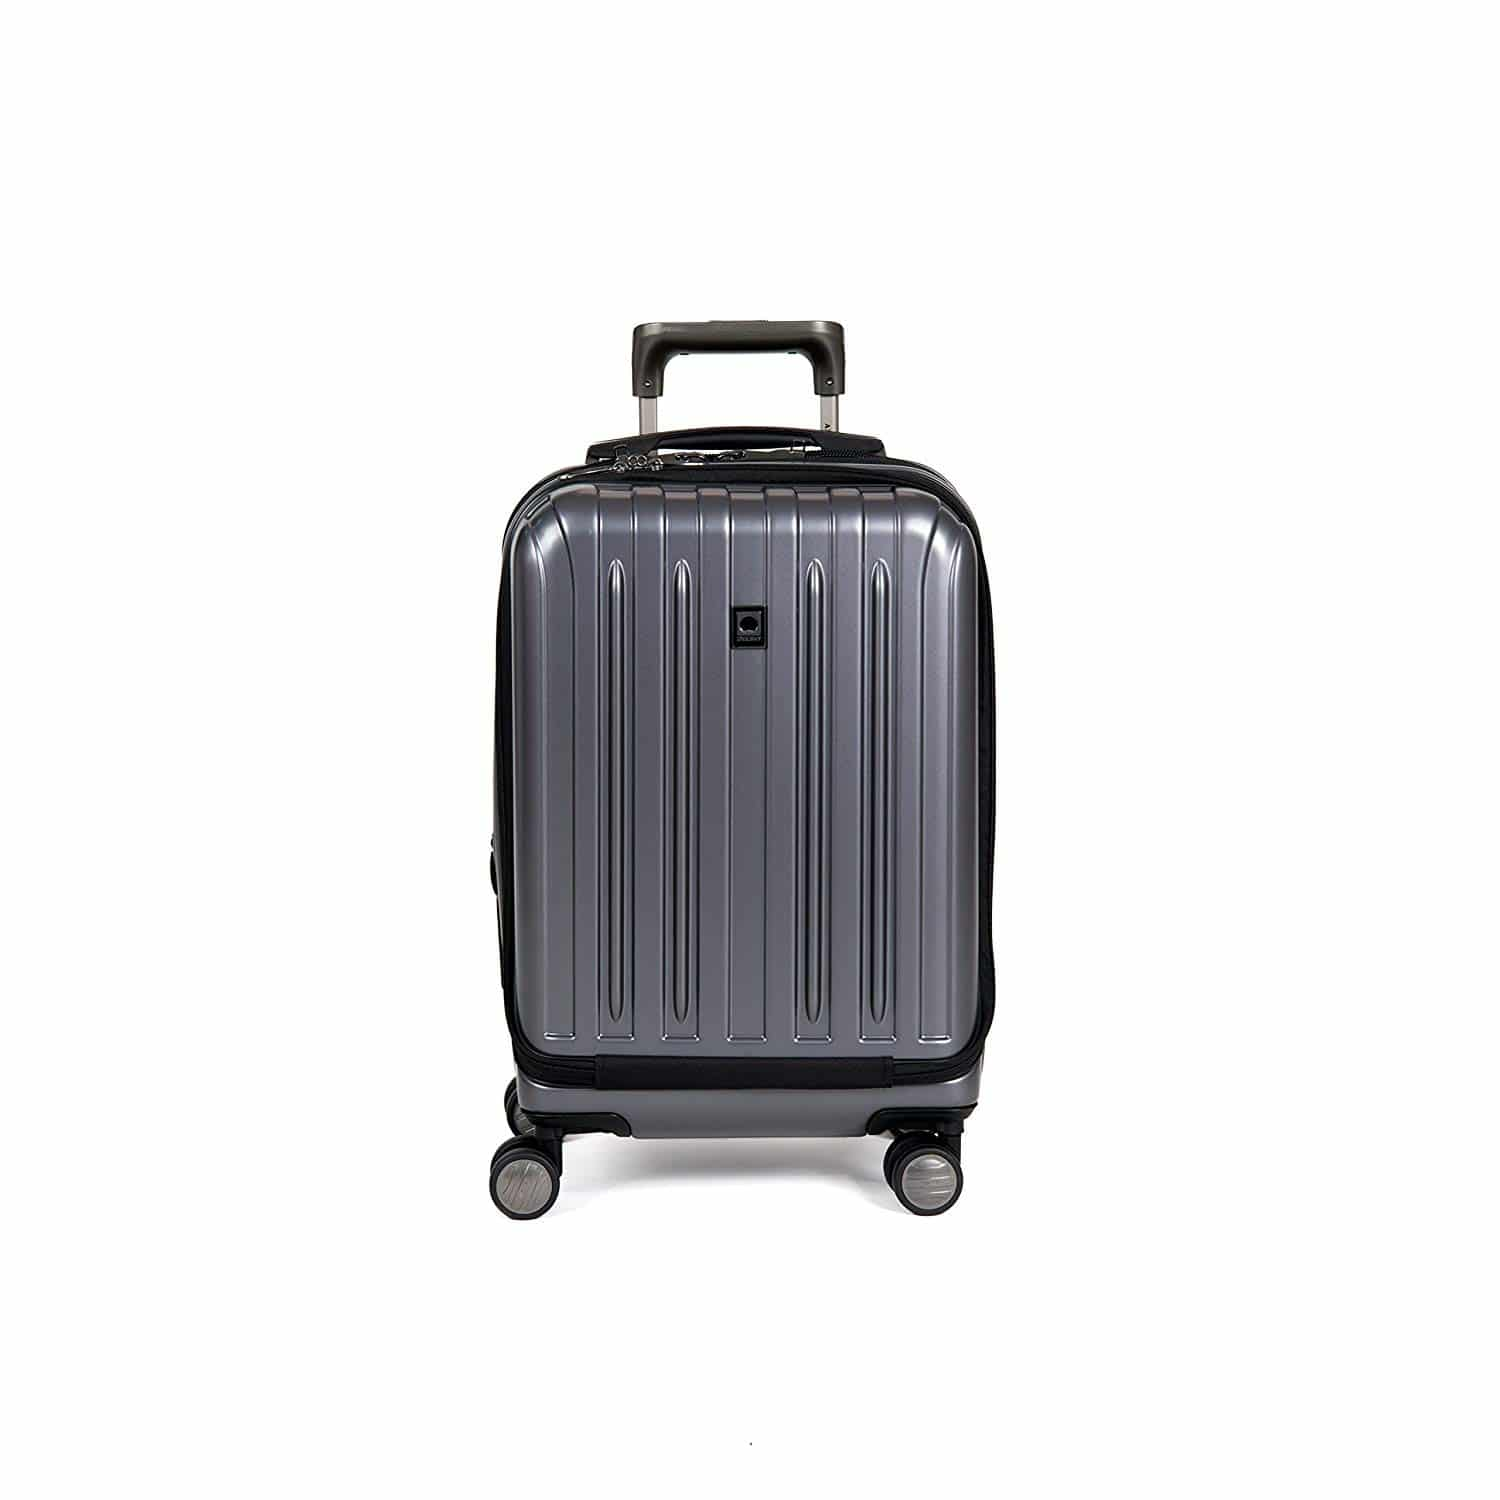 DELSEY Paris Luggage Helium Suitcase